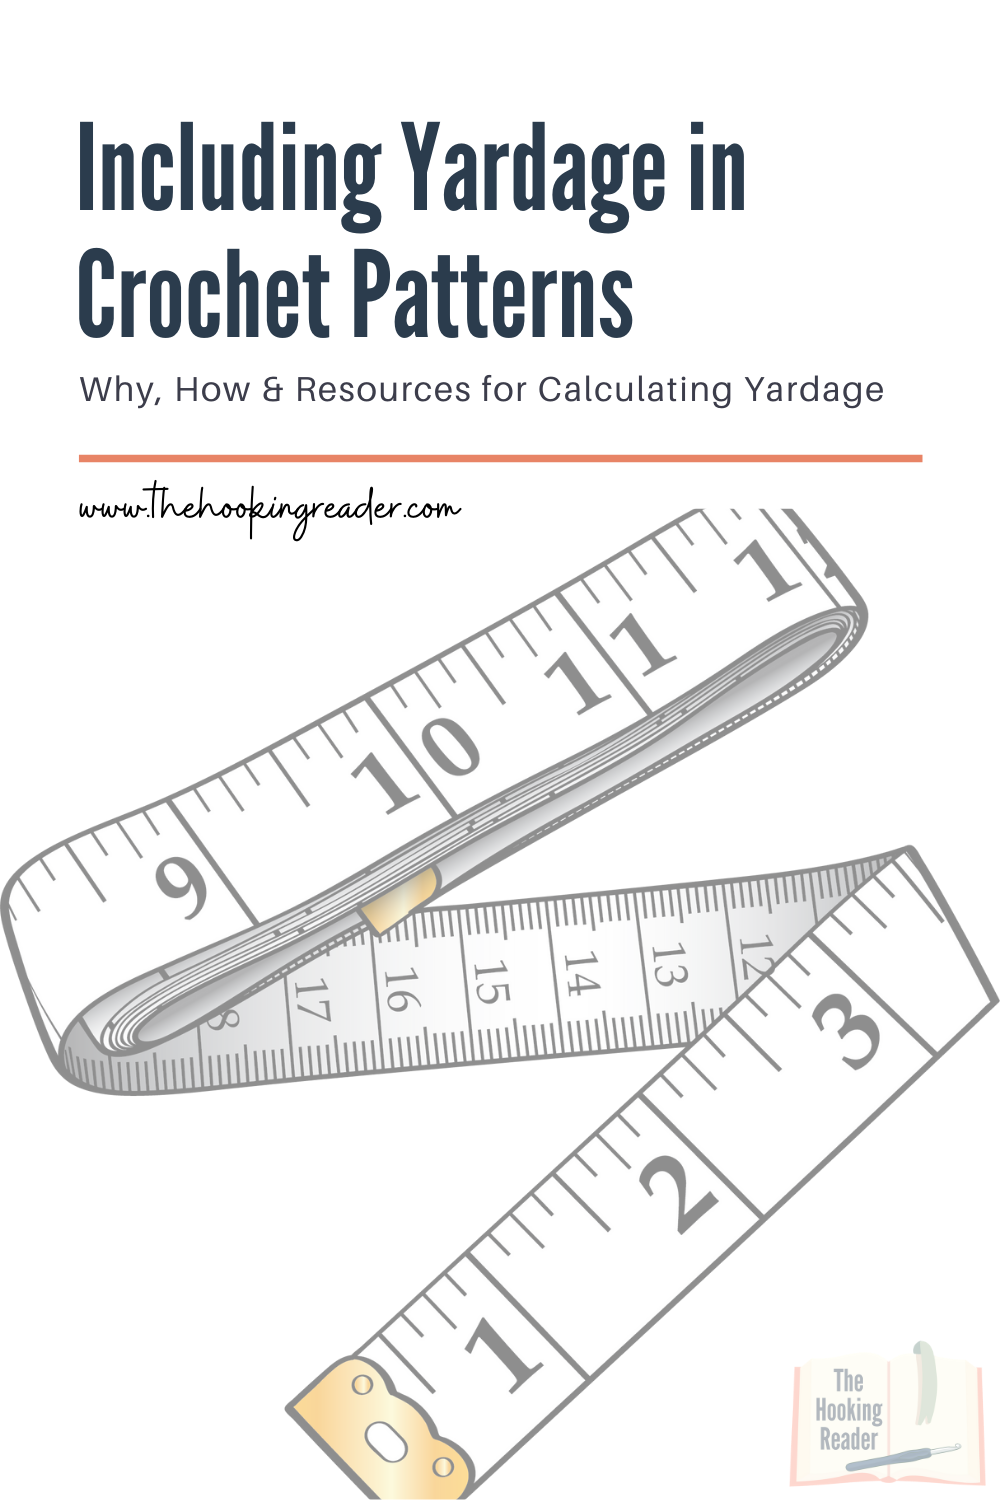 Including Yardage in Crochet Patterns